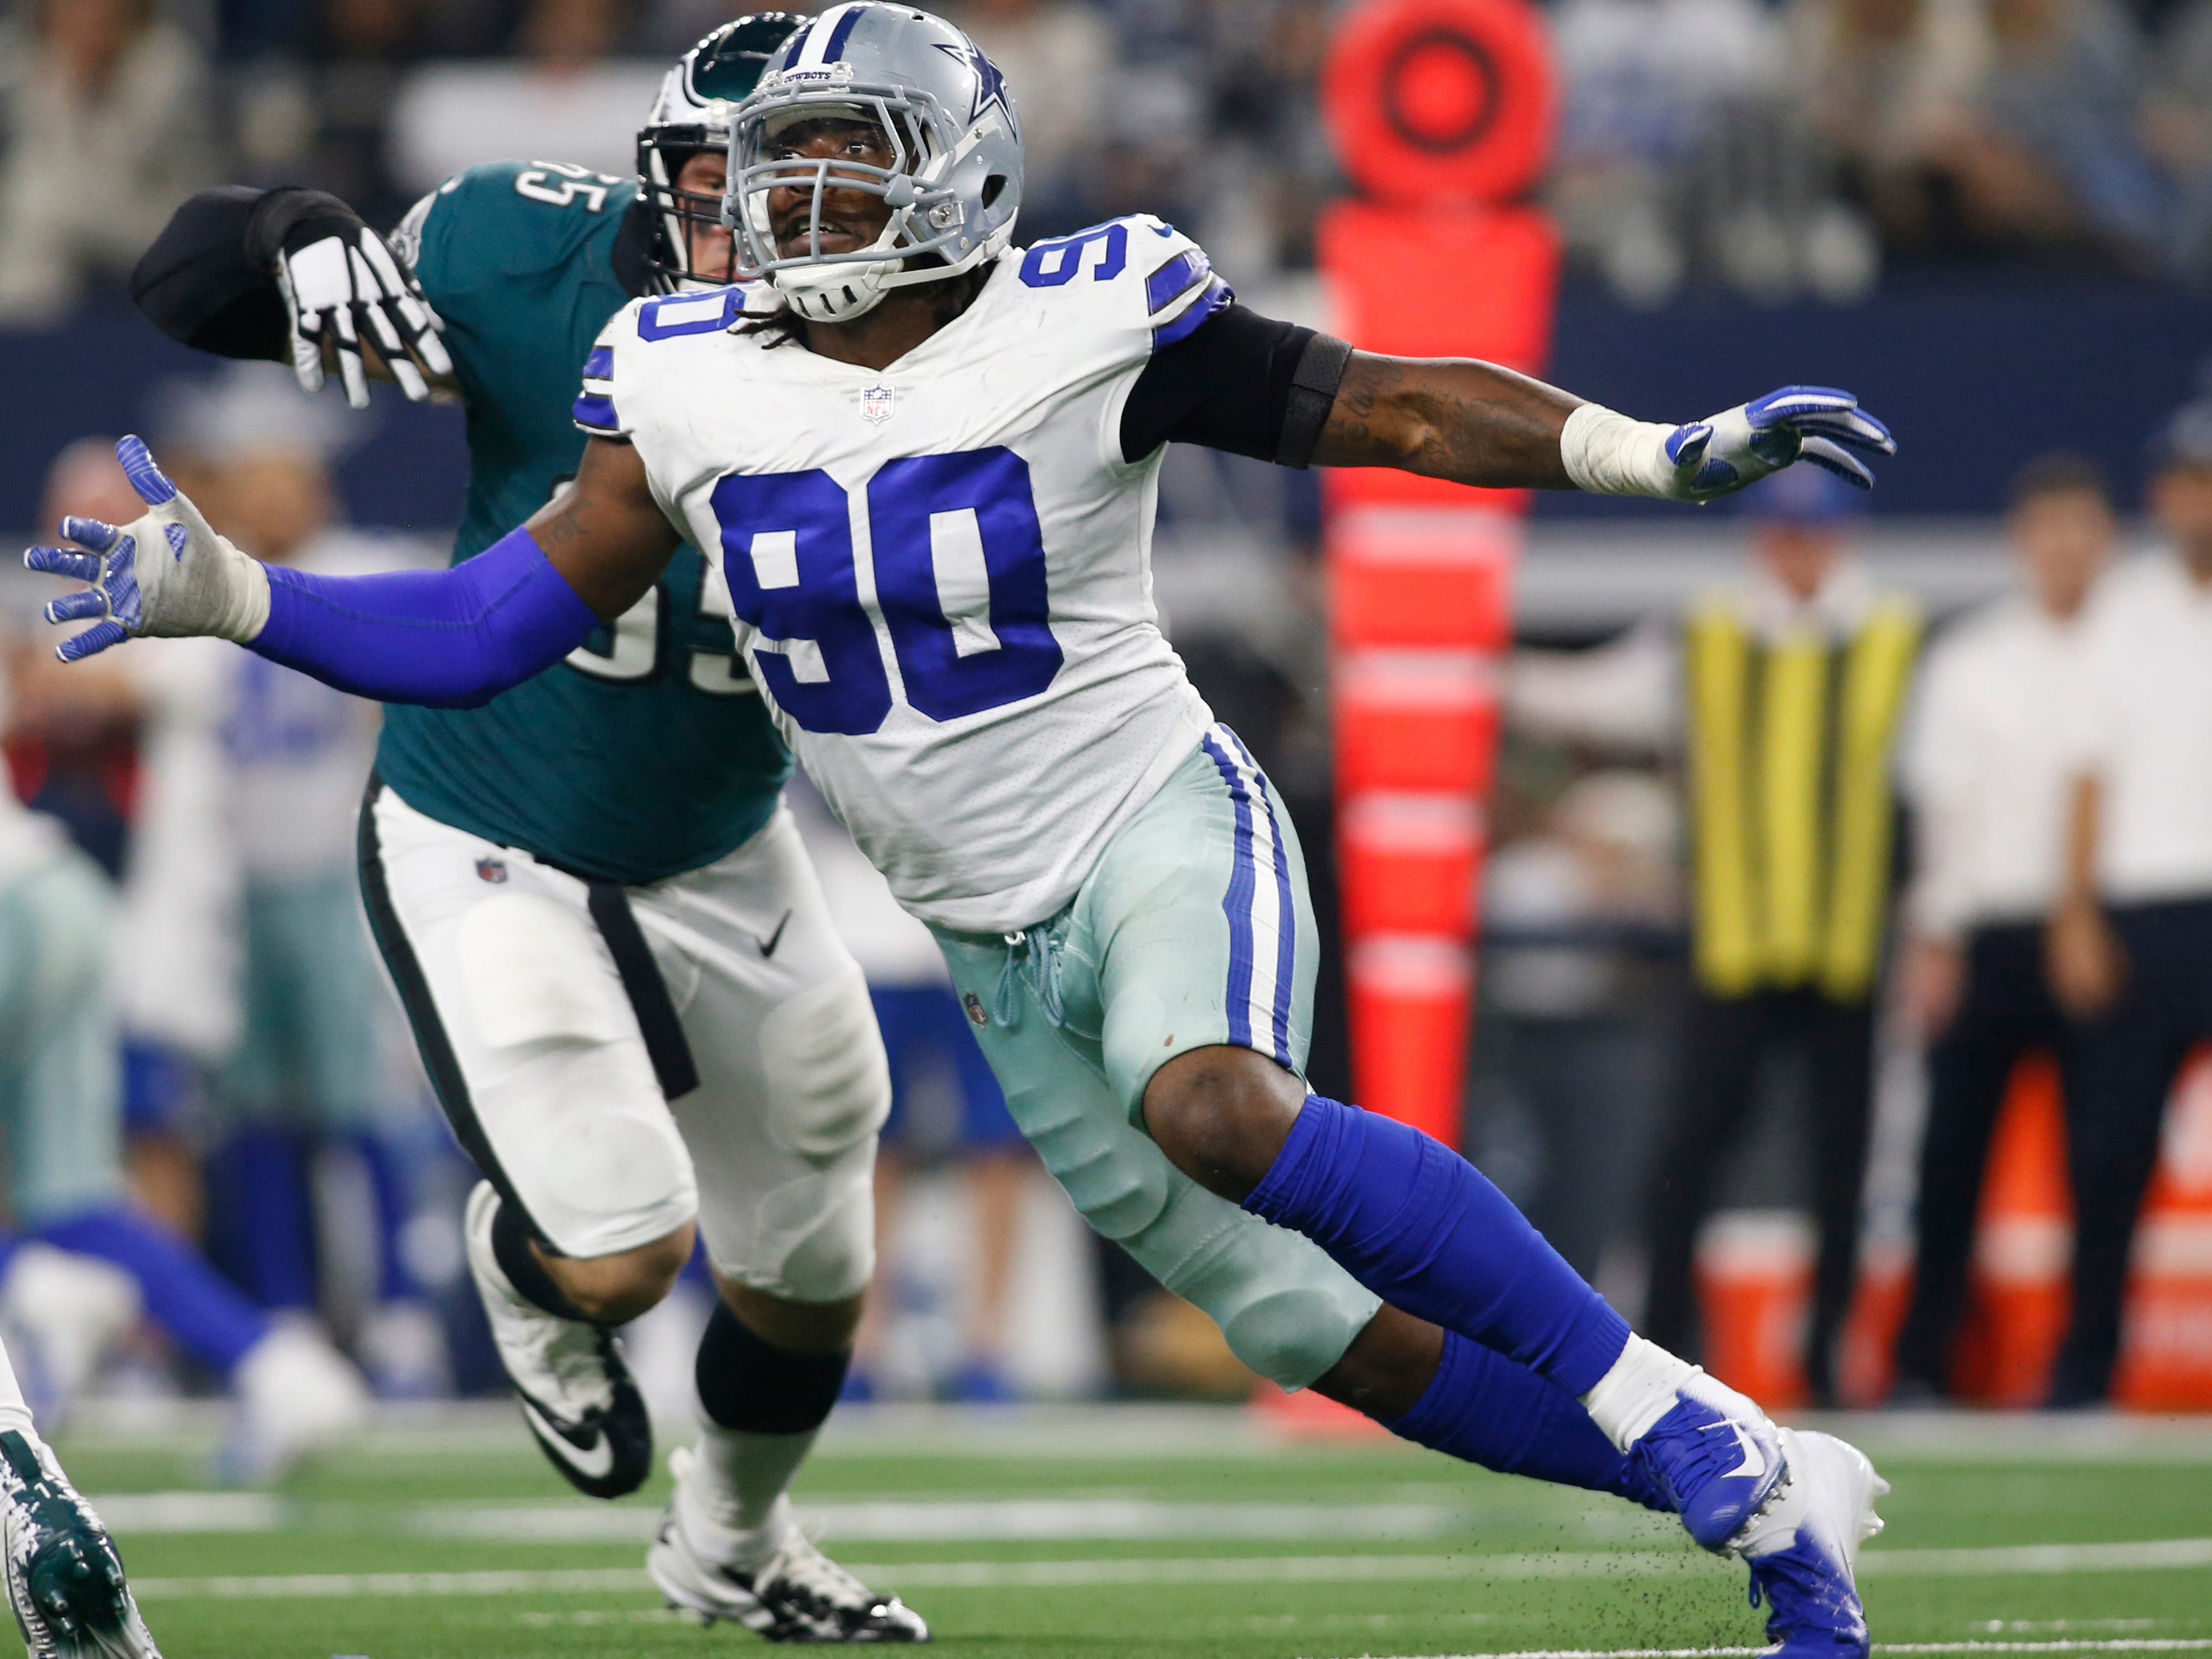 DE - DeMarcus Lawrence, Dallas Cowboys